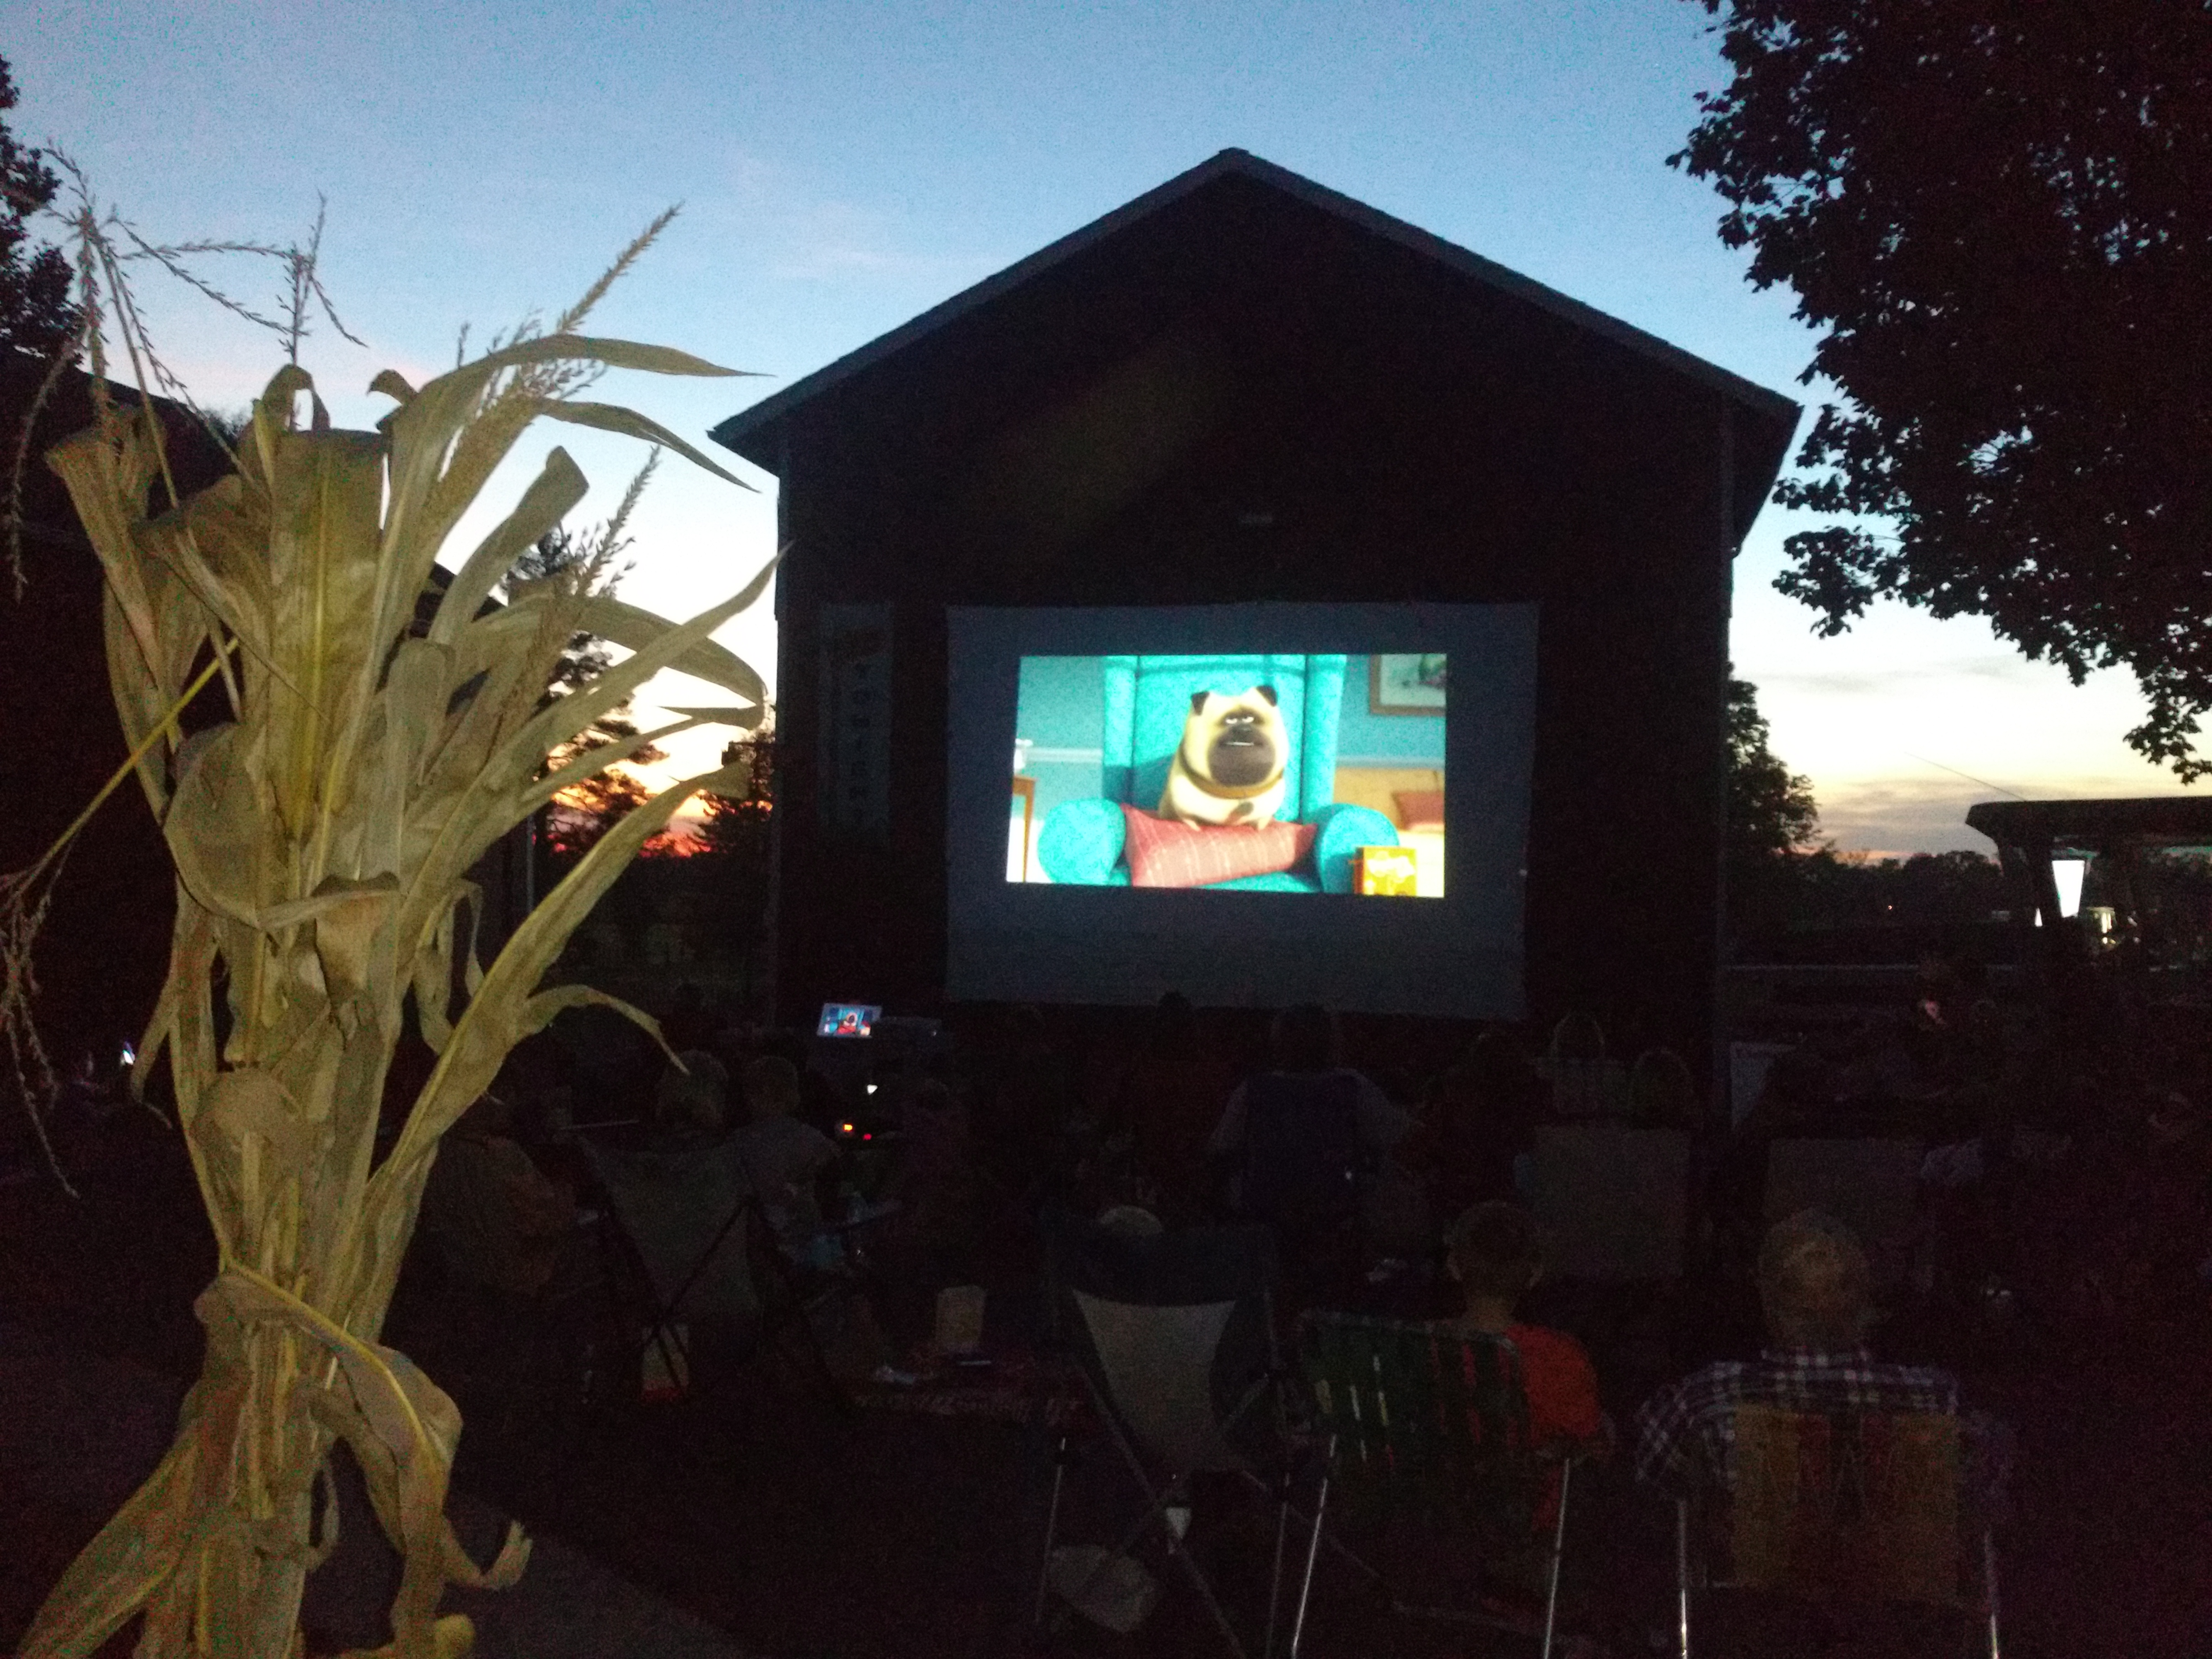 Movie on the side of a barn